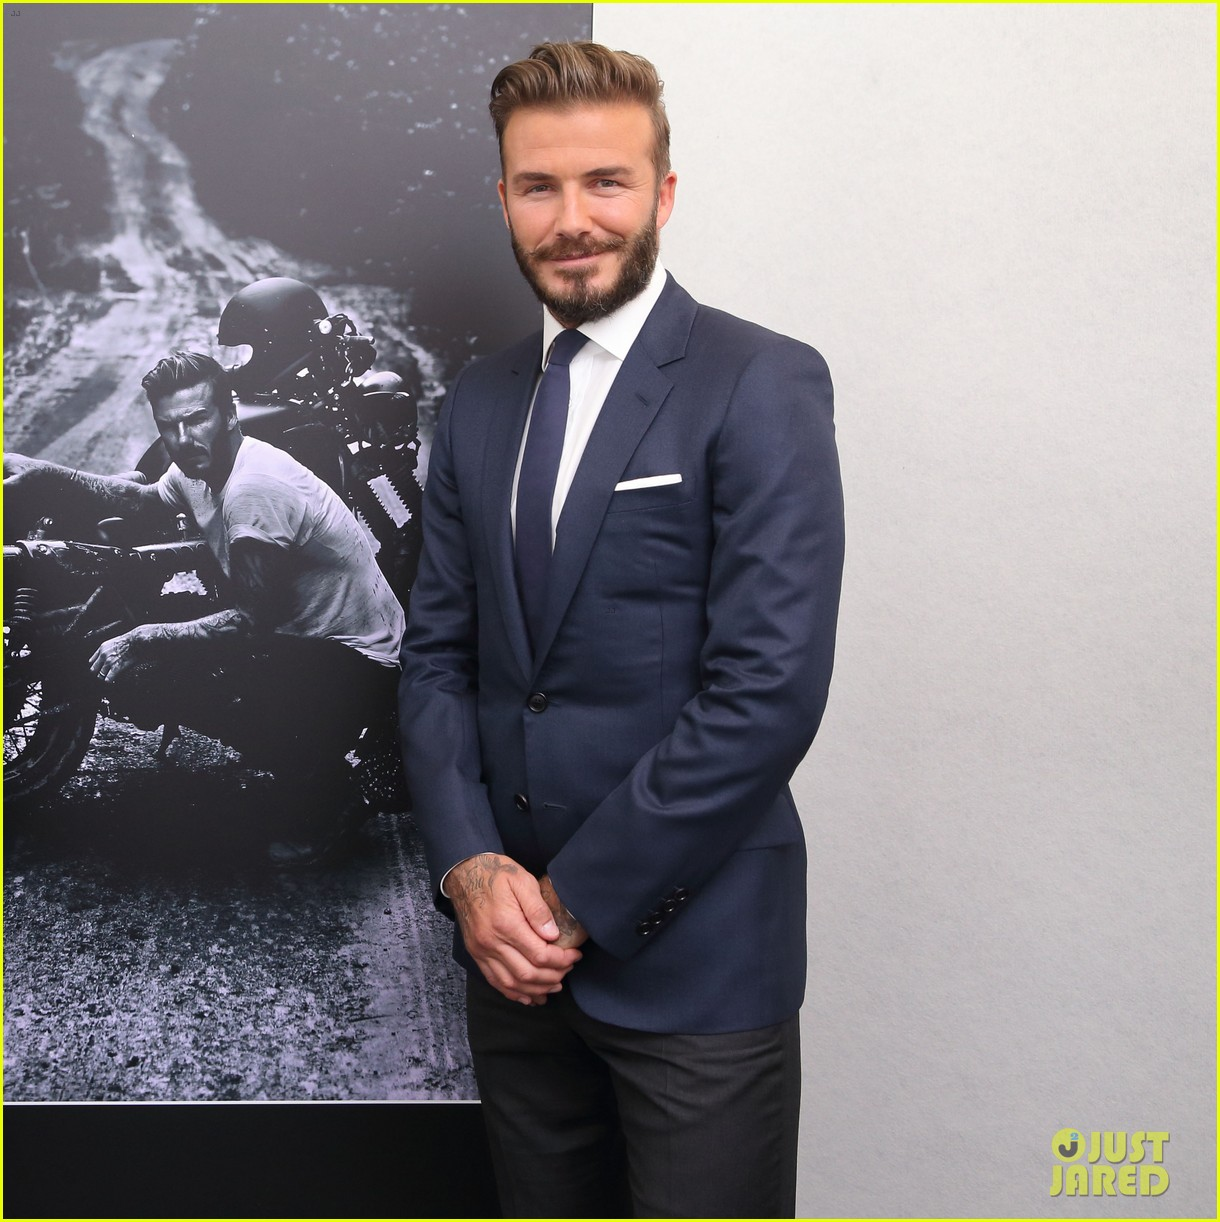 david beckham attends photo call for his documentary into the unknown 03